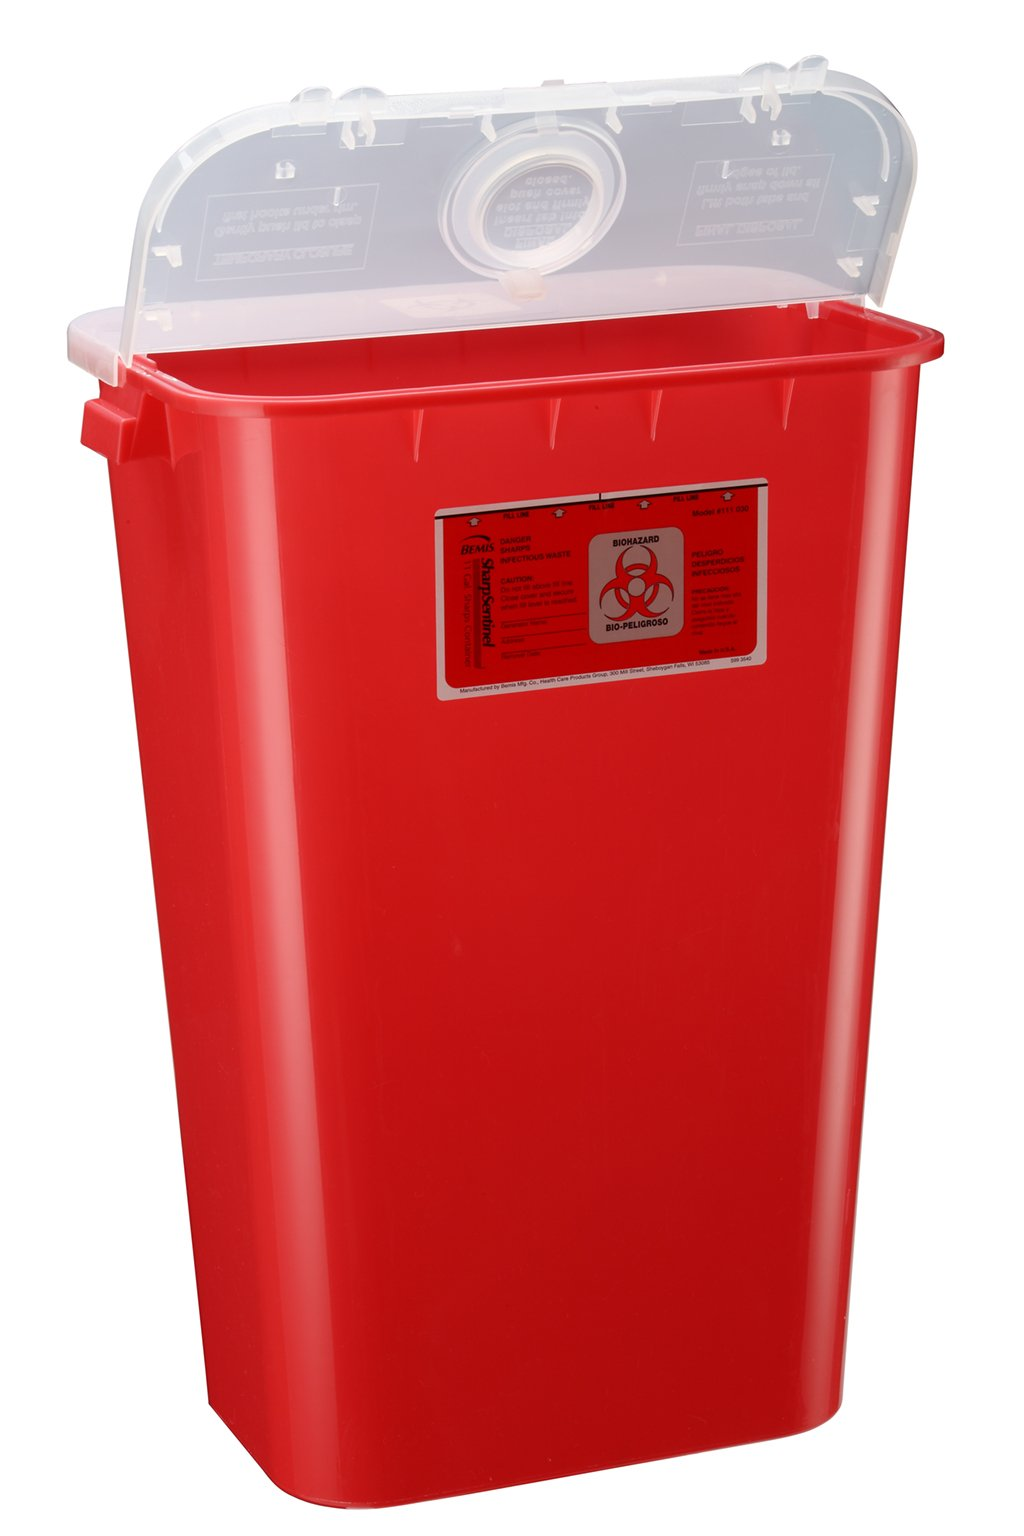 Bemis Healthcare 111030-6 11 gal Sharps Container, Red (Pack of 6)